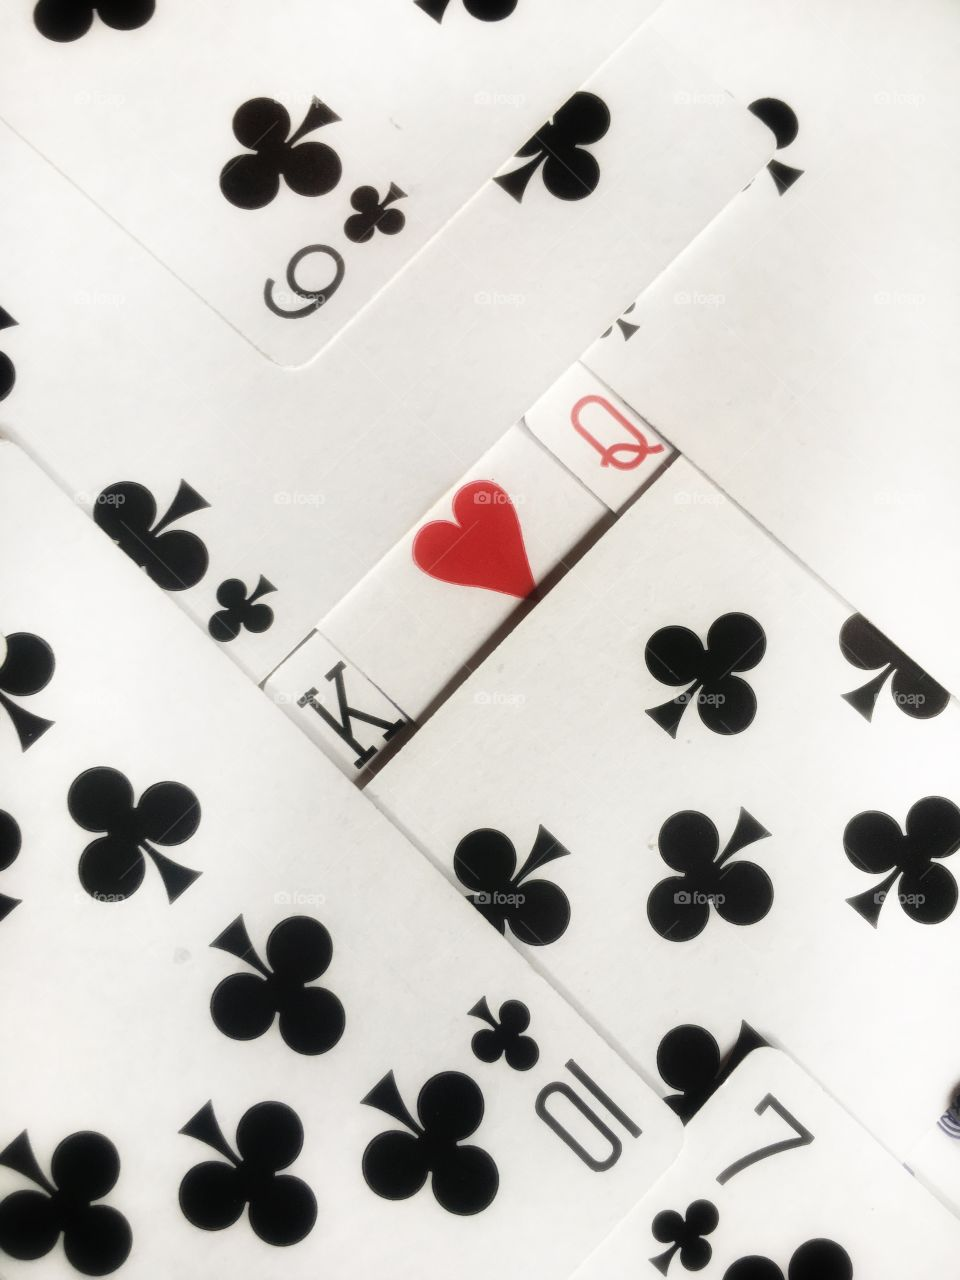 Being creative with playing cards is my favourite hobby.